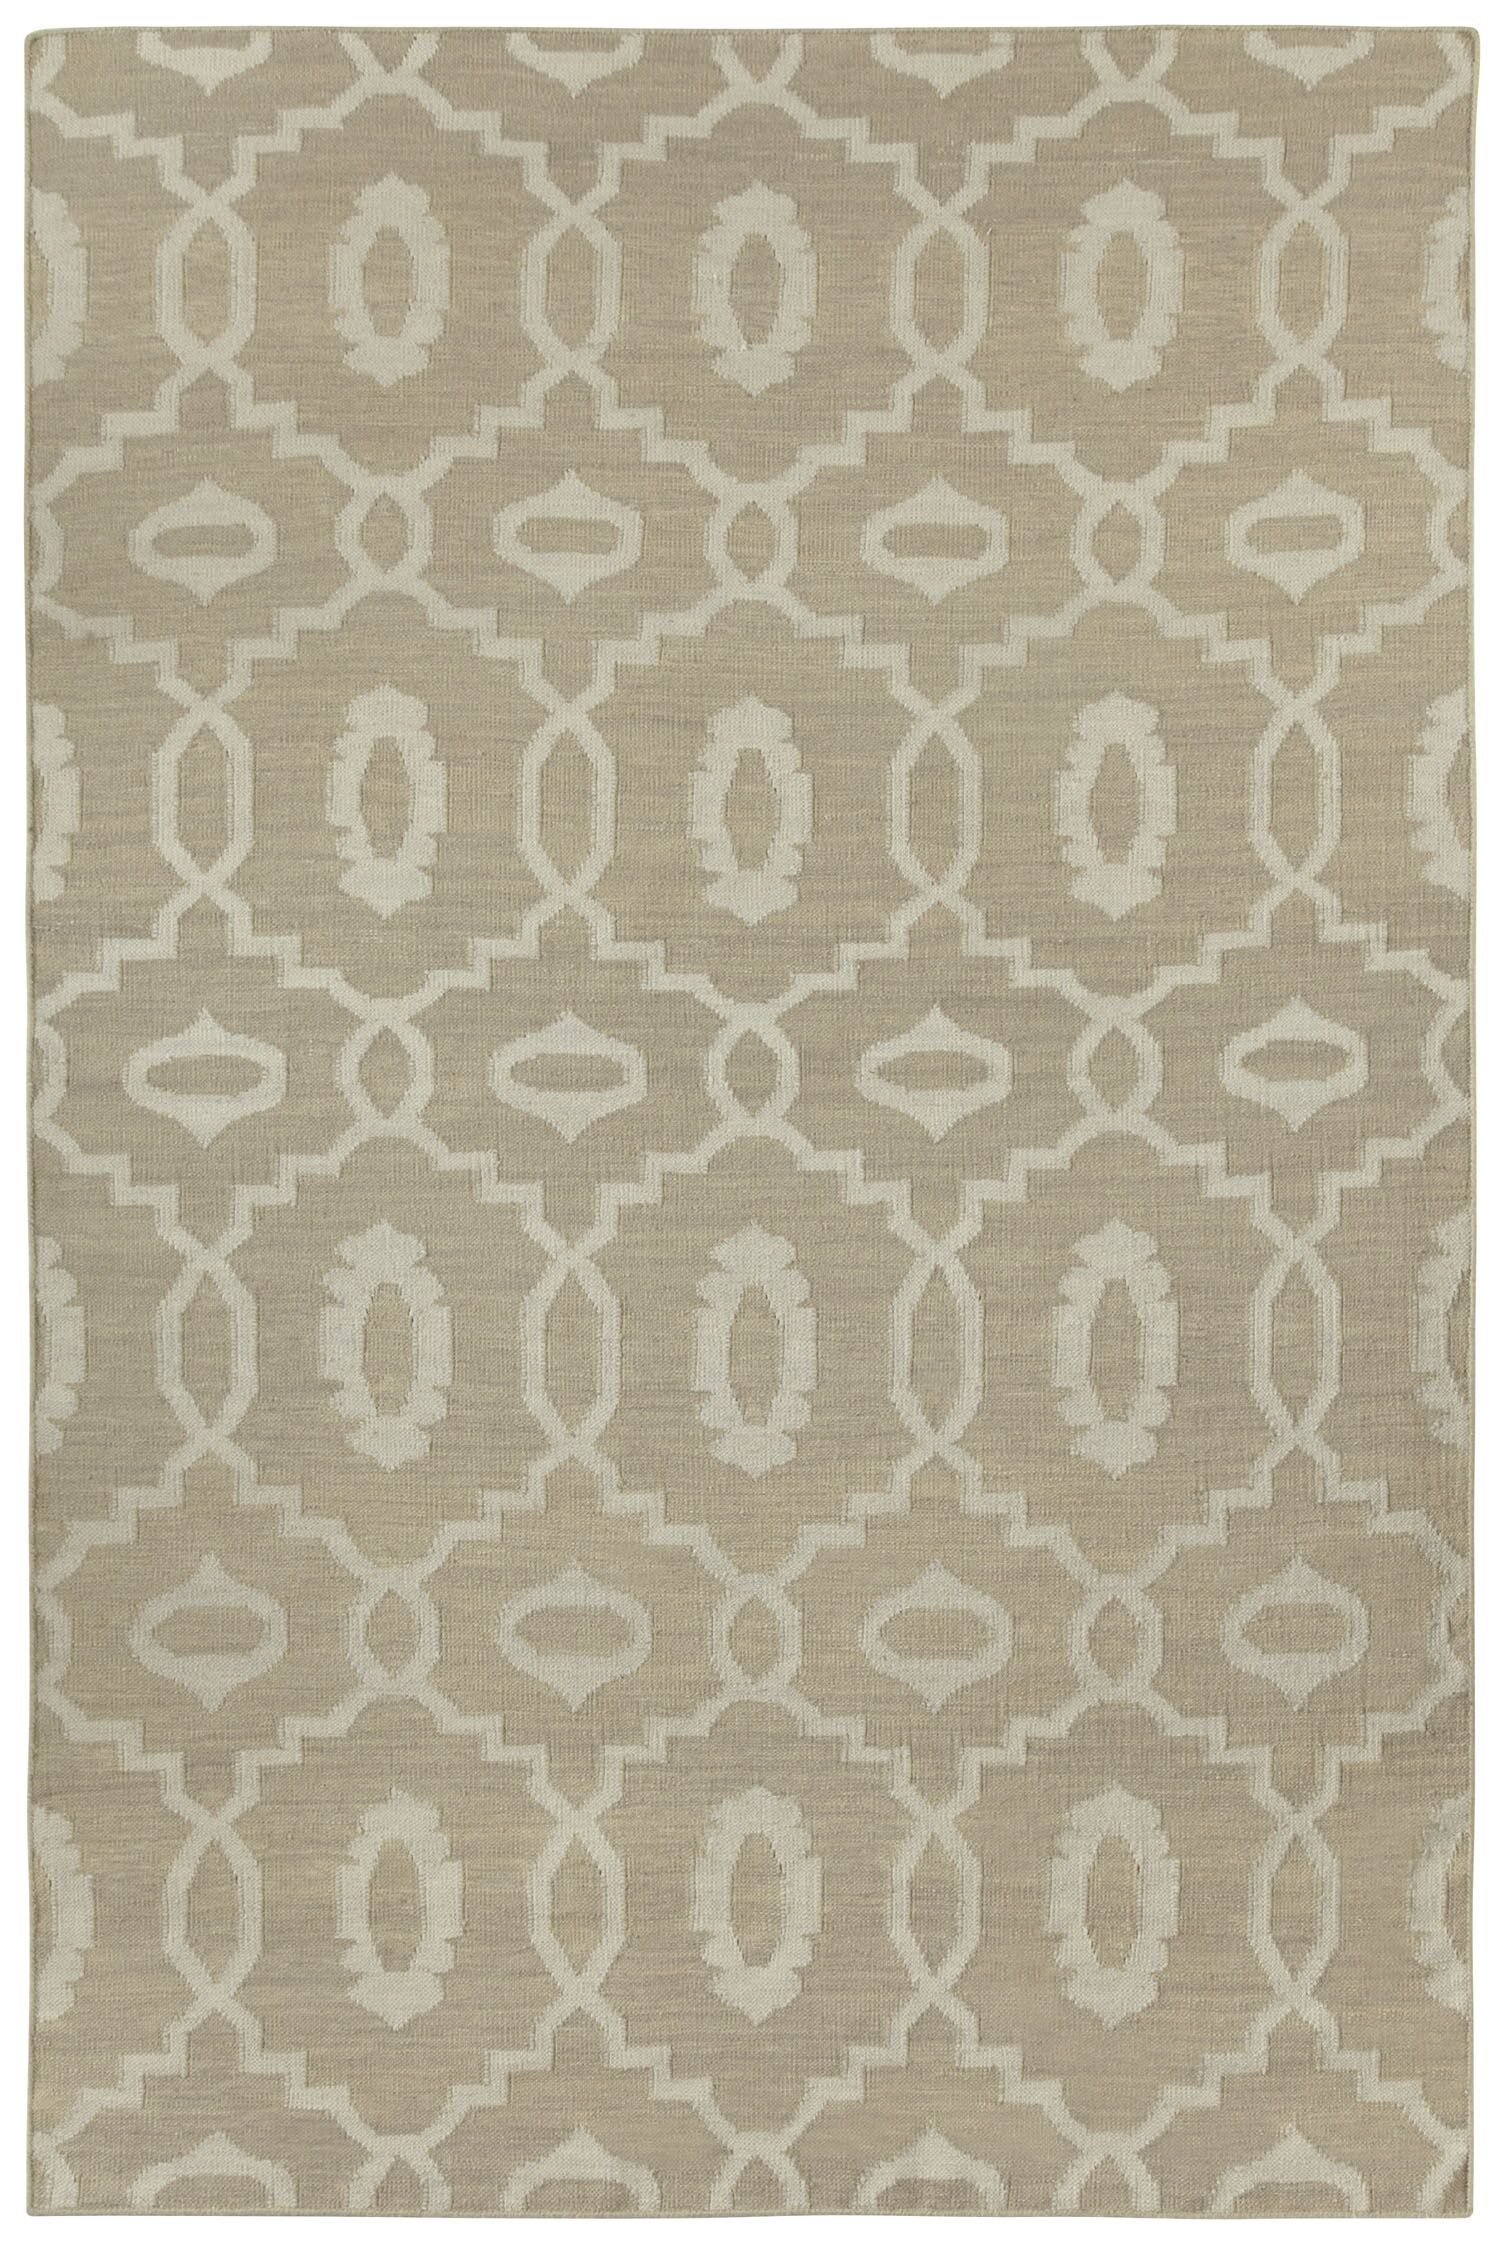 Anchor Beige Area Rug Rug Size: Rectangle 3' x 5'